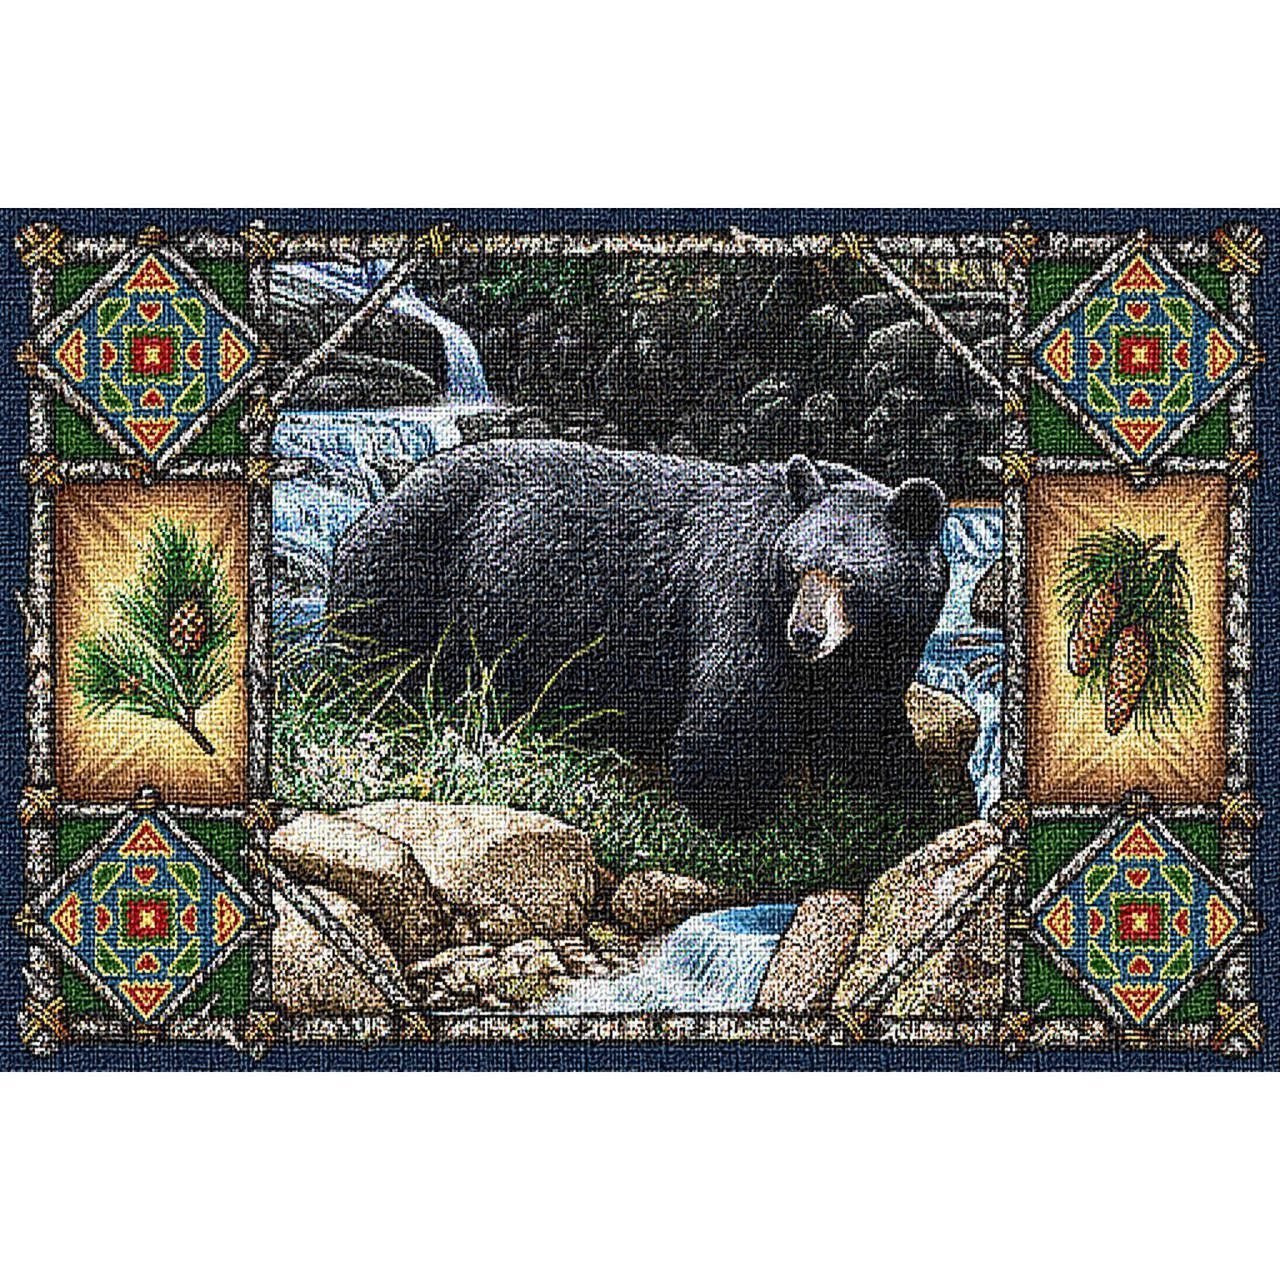 Bear Mountain Tapestry Placemat Set of 4 Lodge Cabin House Lake Kitchen Decor